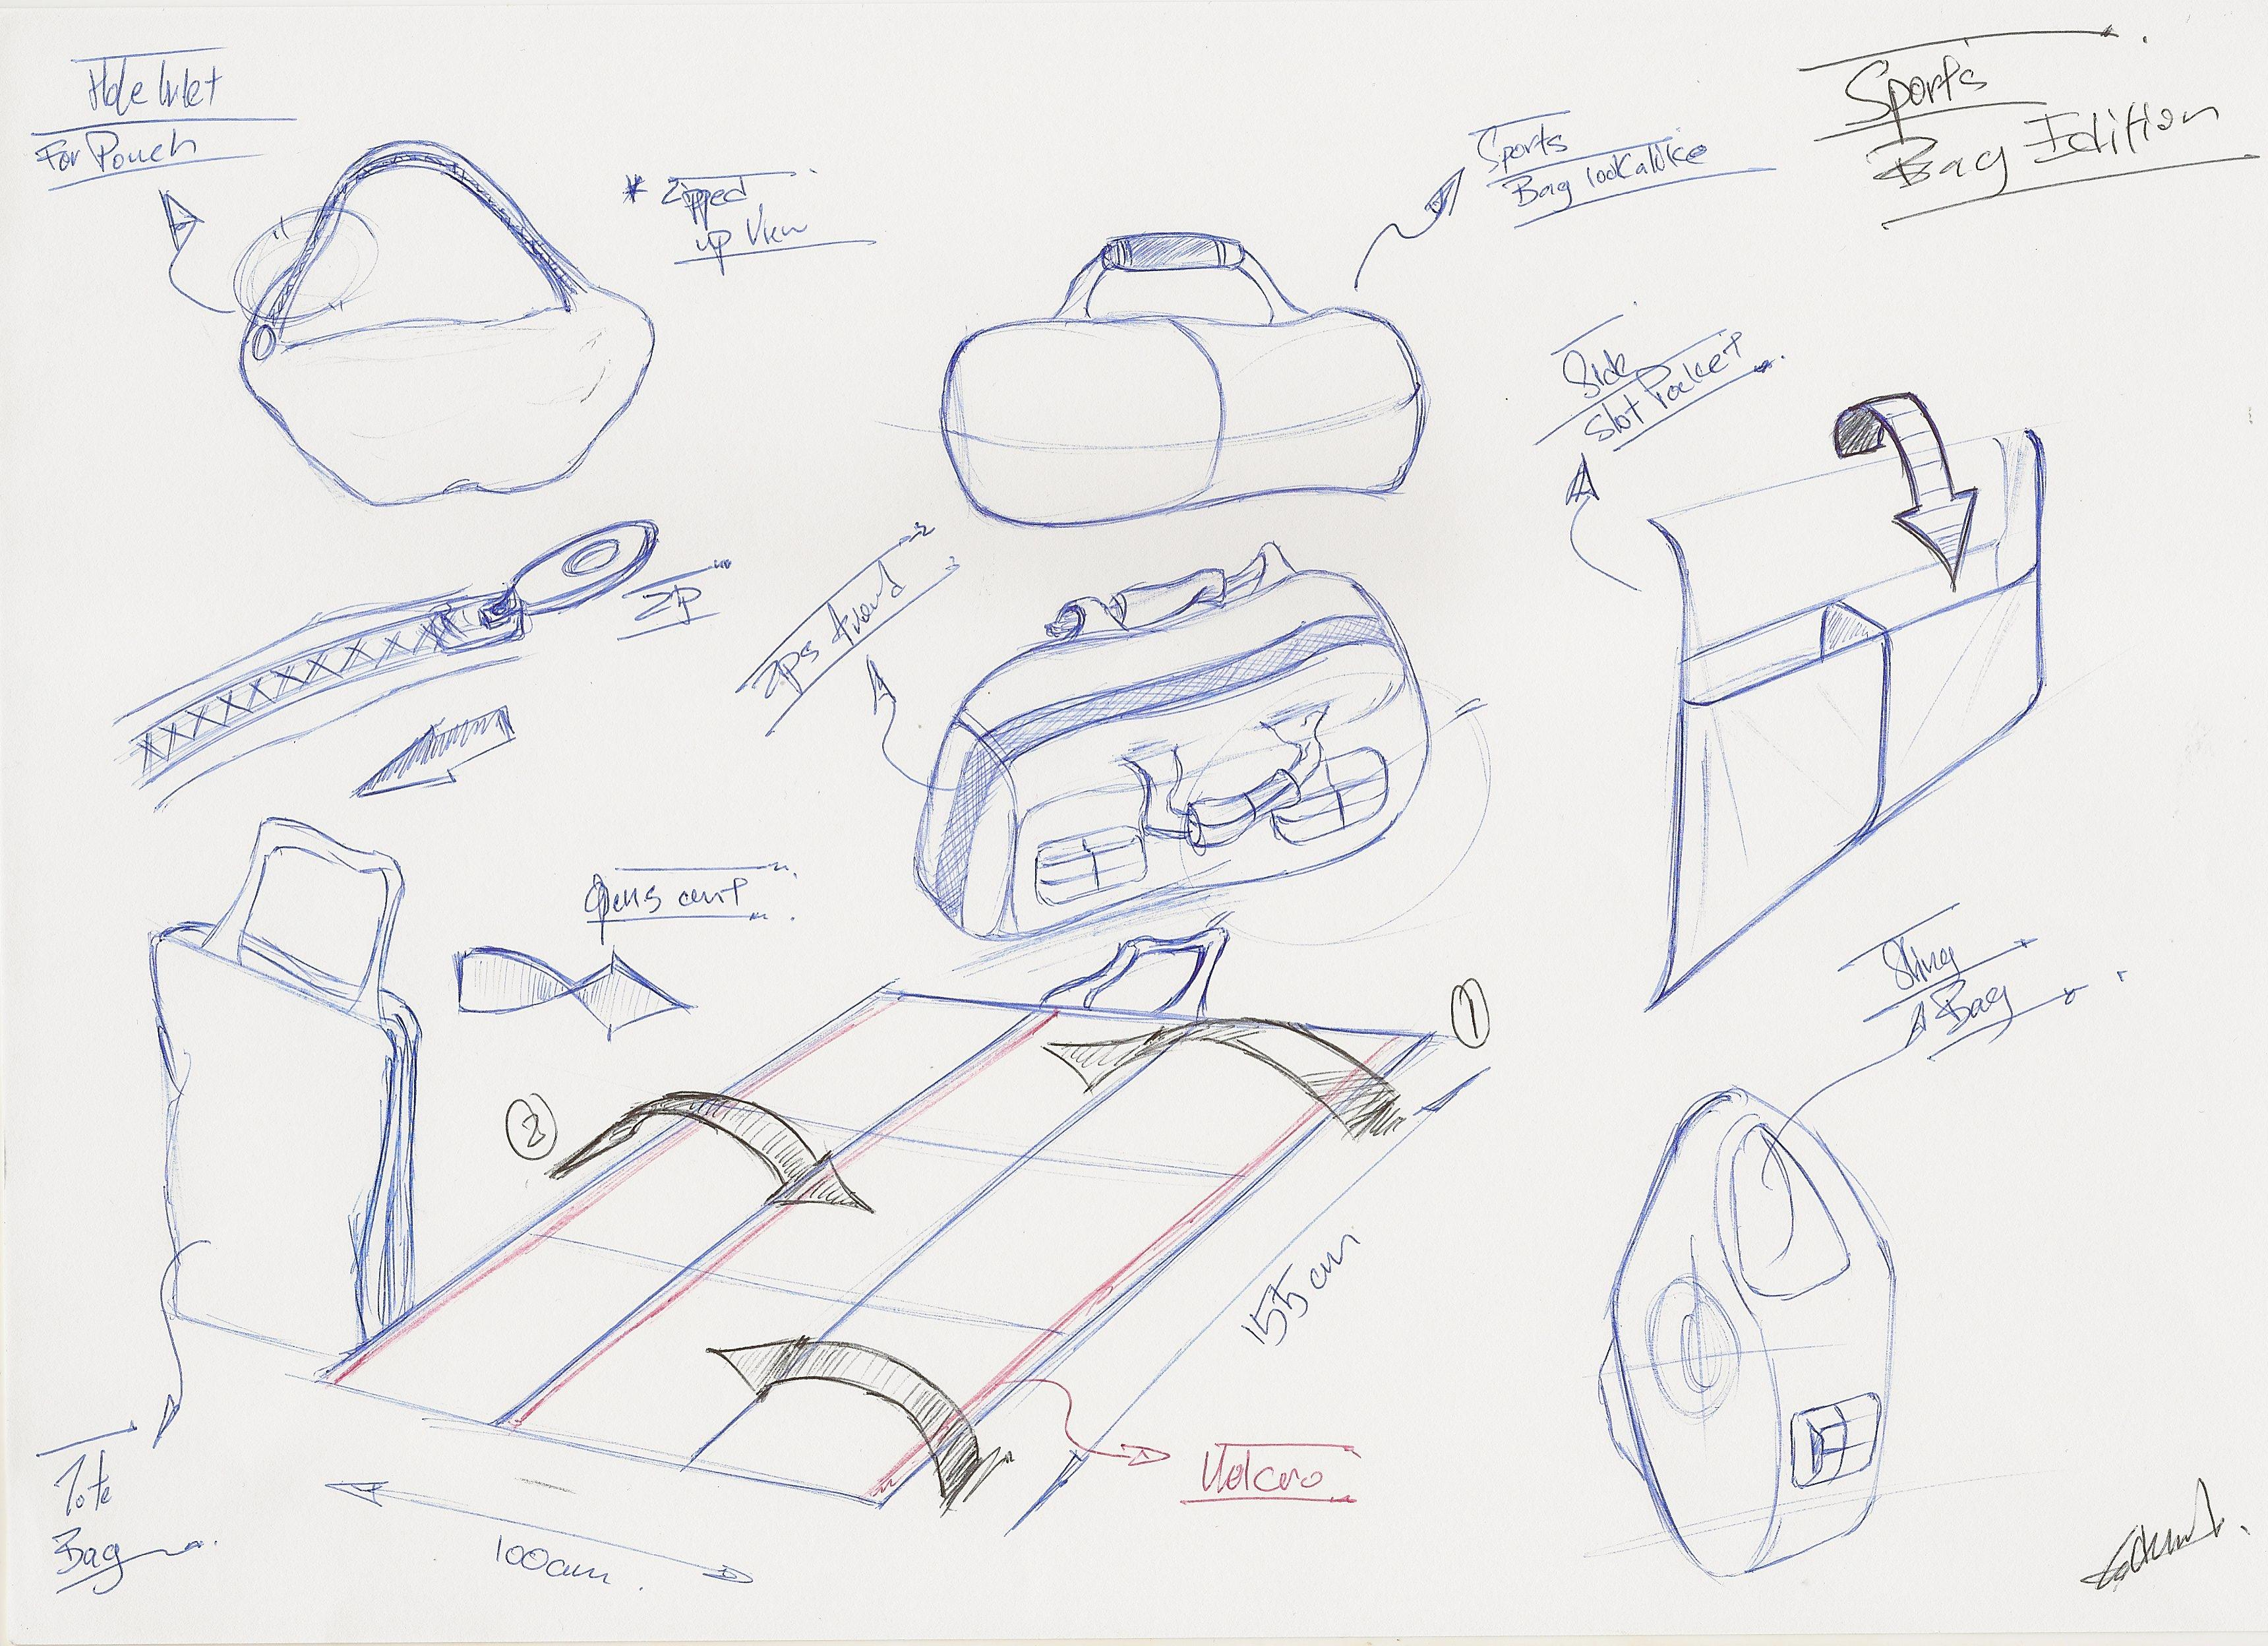 Concept Development Stage - Sketching the Sarobag